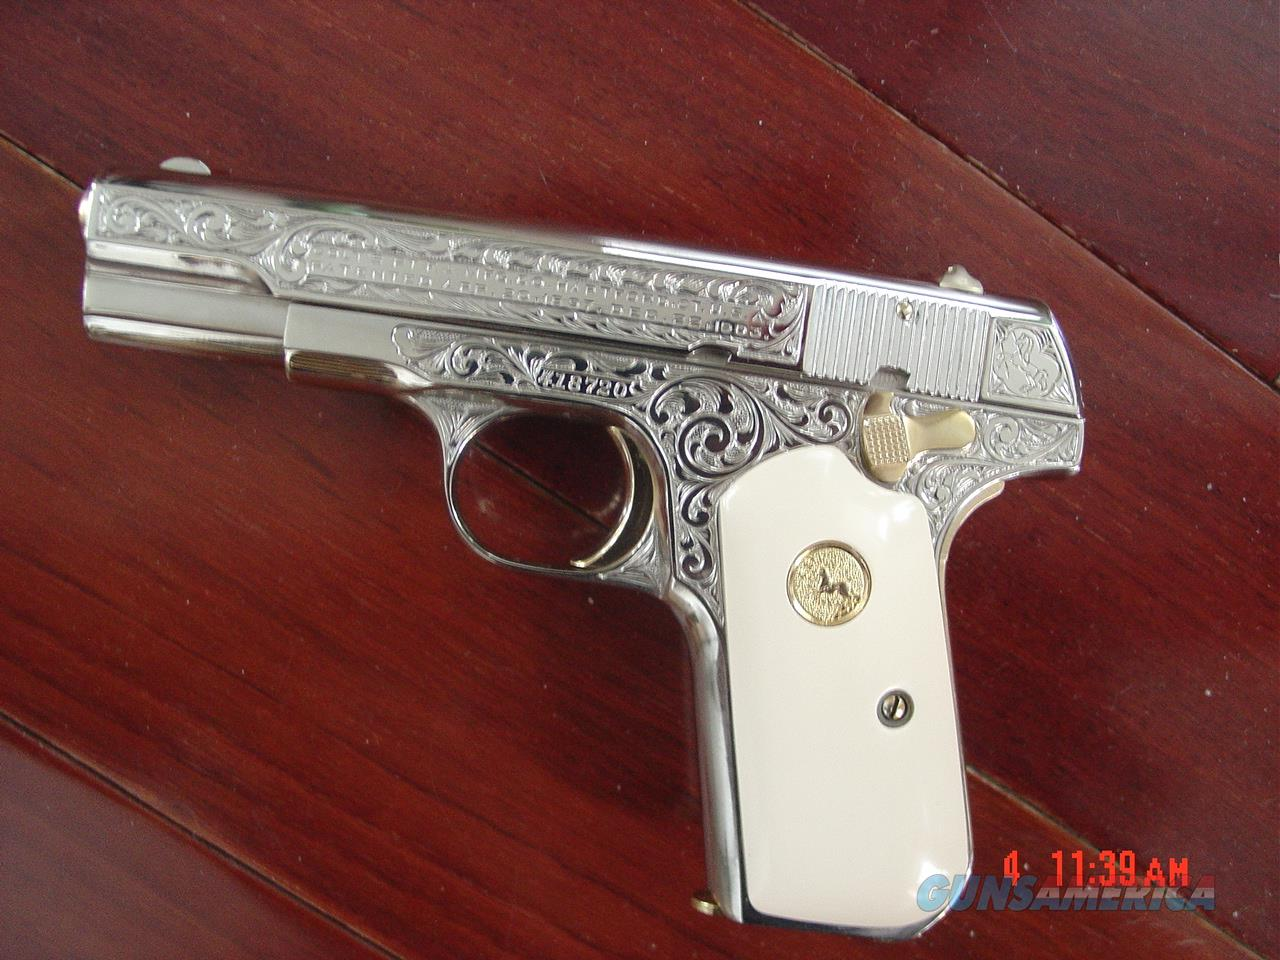 Colt 1903 32ACP,1923,Master engraved & refinished nickel,by S.Leis,bonded ivory,24K gold accents,certificate,awesome showpiece  Guns > Pistols > Colt Automatic Pistols (.25, .32, & .380 cal)